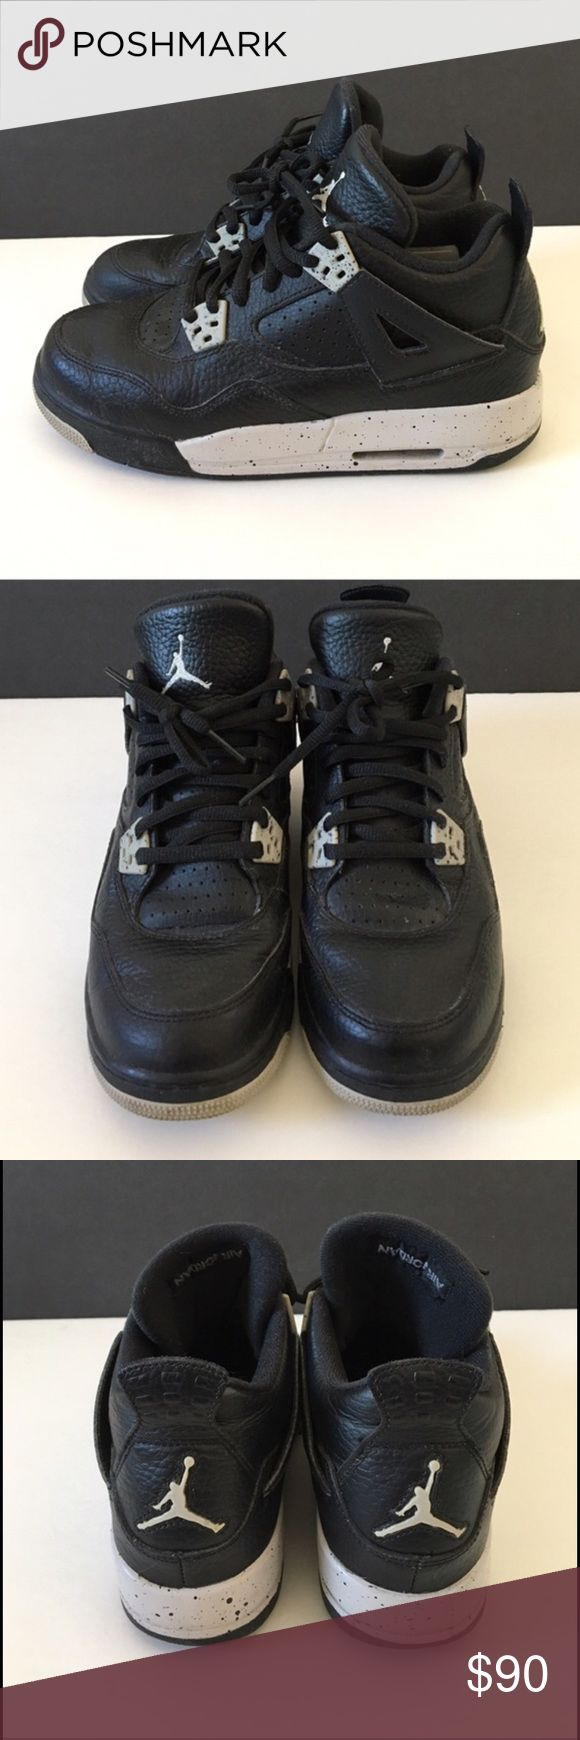 Nike Jordan retro 4 oreo 4y 5.5 women's Bought from another posher, barely worn. Offers accepted! Jordan Shoes Sneakers